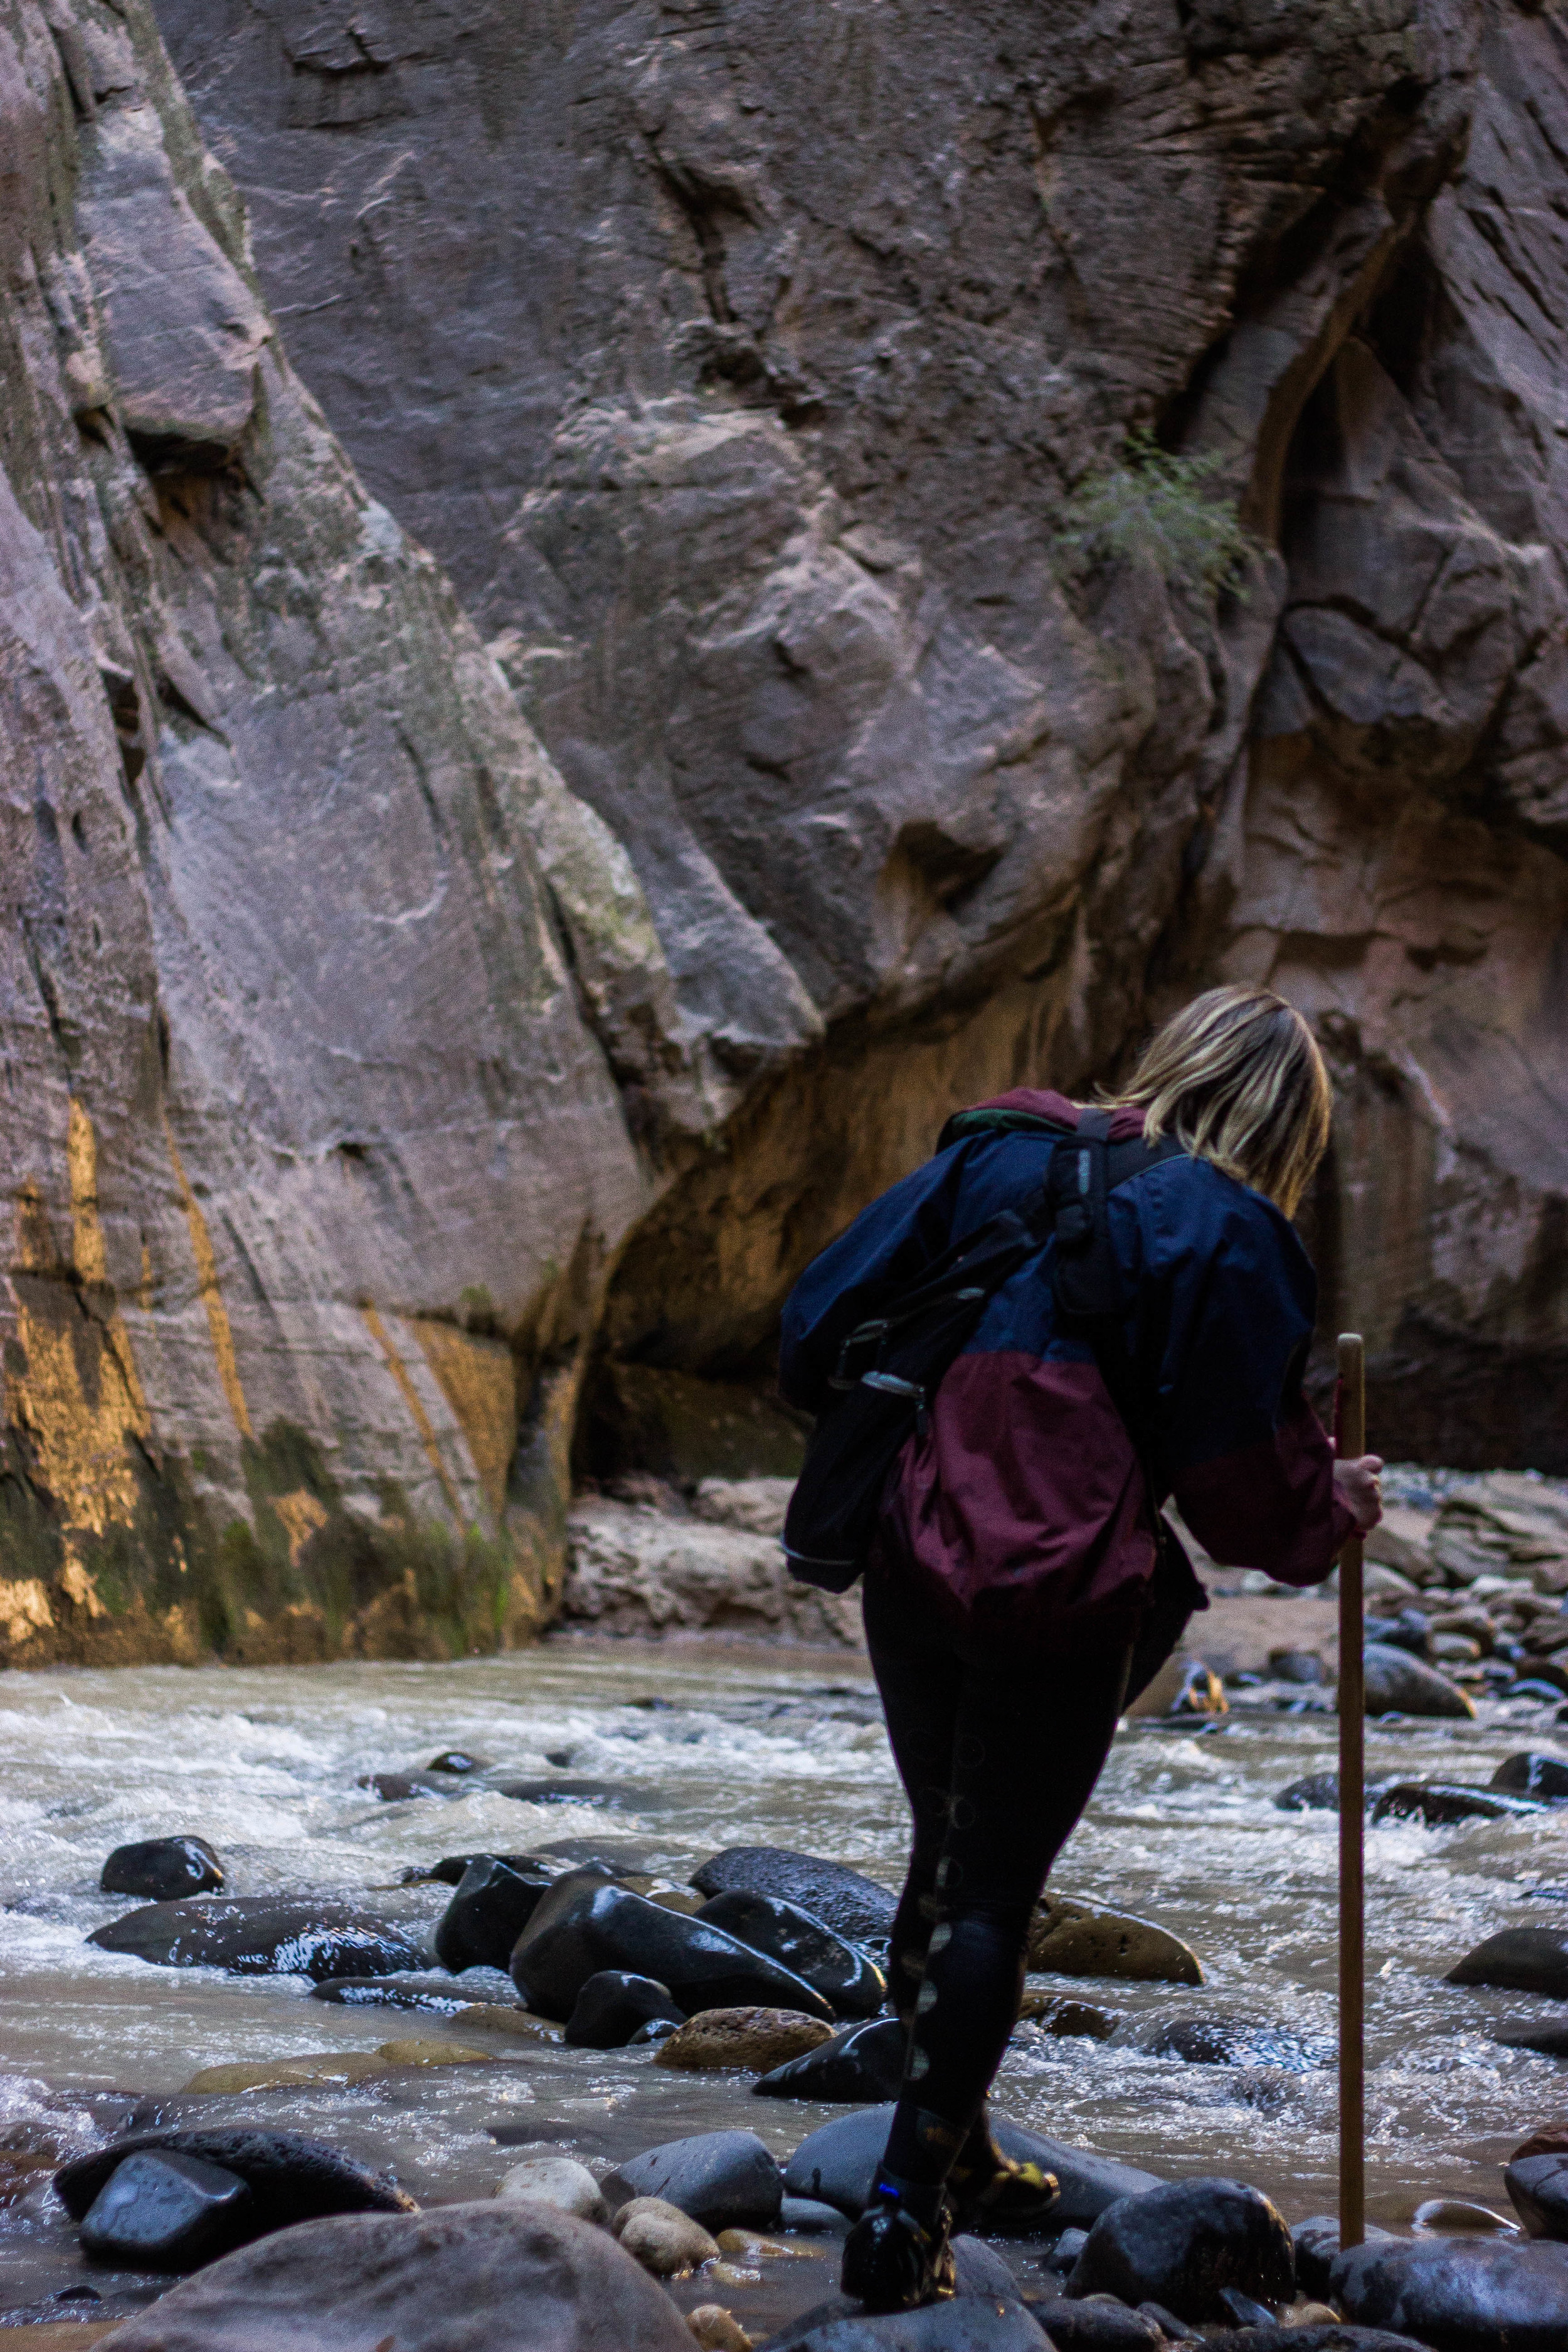 Jessica Obert, 22, of Phoenix, Ariz. hikes the Narrows trail in Zion National Park in Hurricane, Utah. (Photo by Gretchen Burnton)